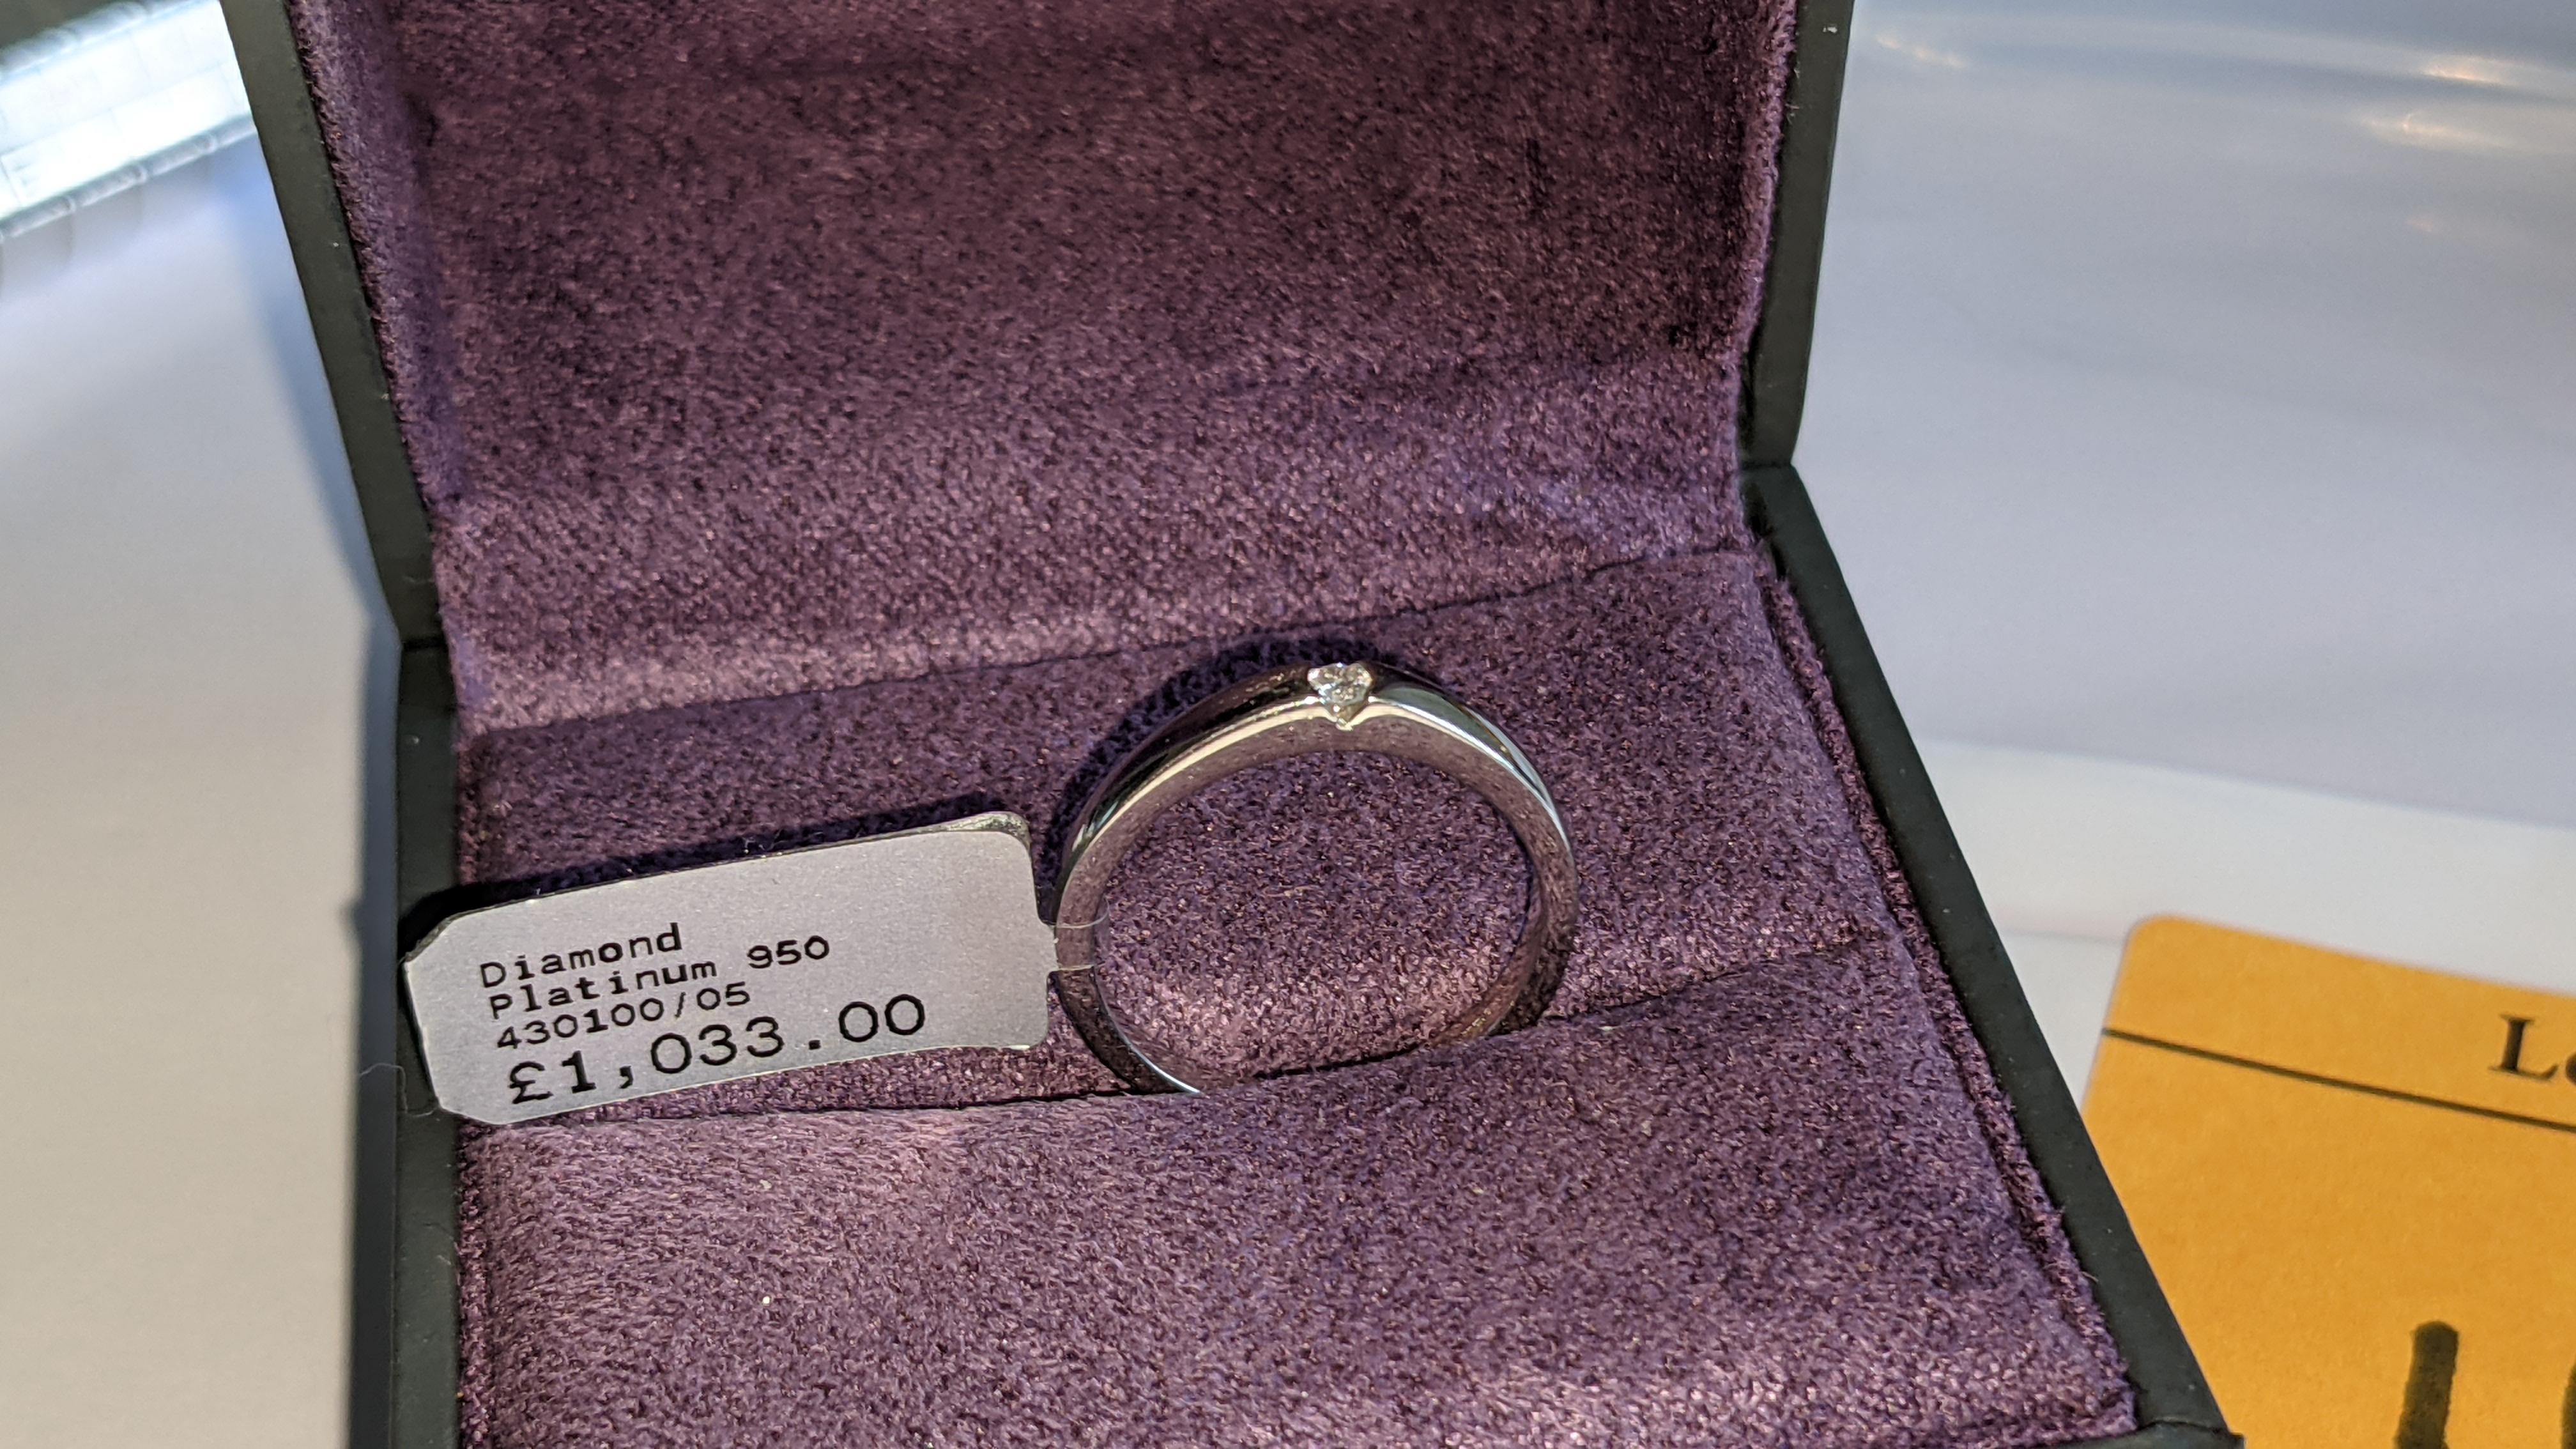 Platinum 950 ring with 0.05ct H/Si diamond. RRP £1,033 - Image 3 of 13